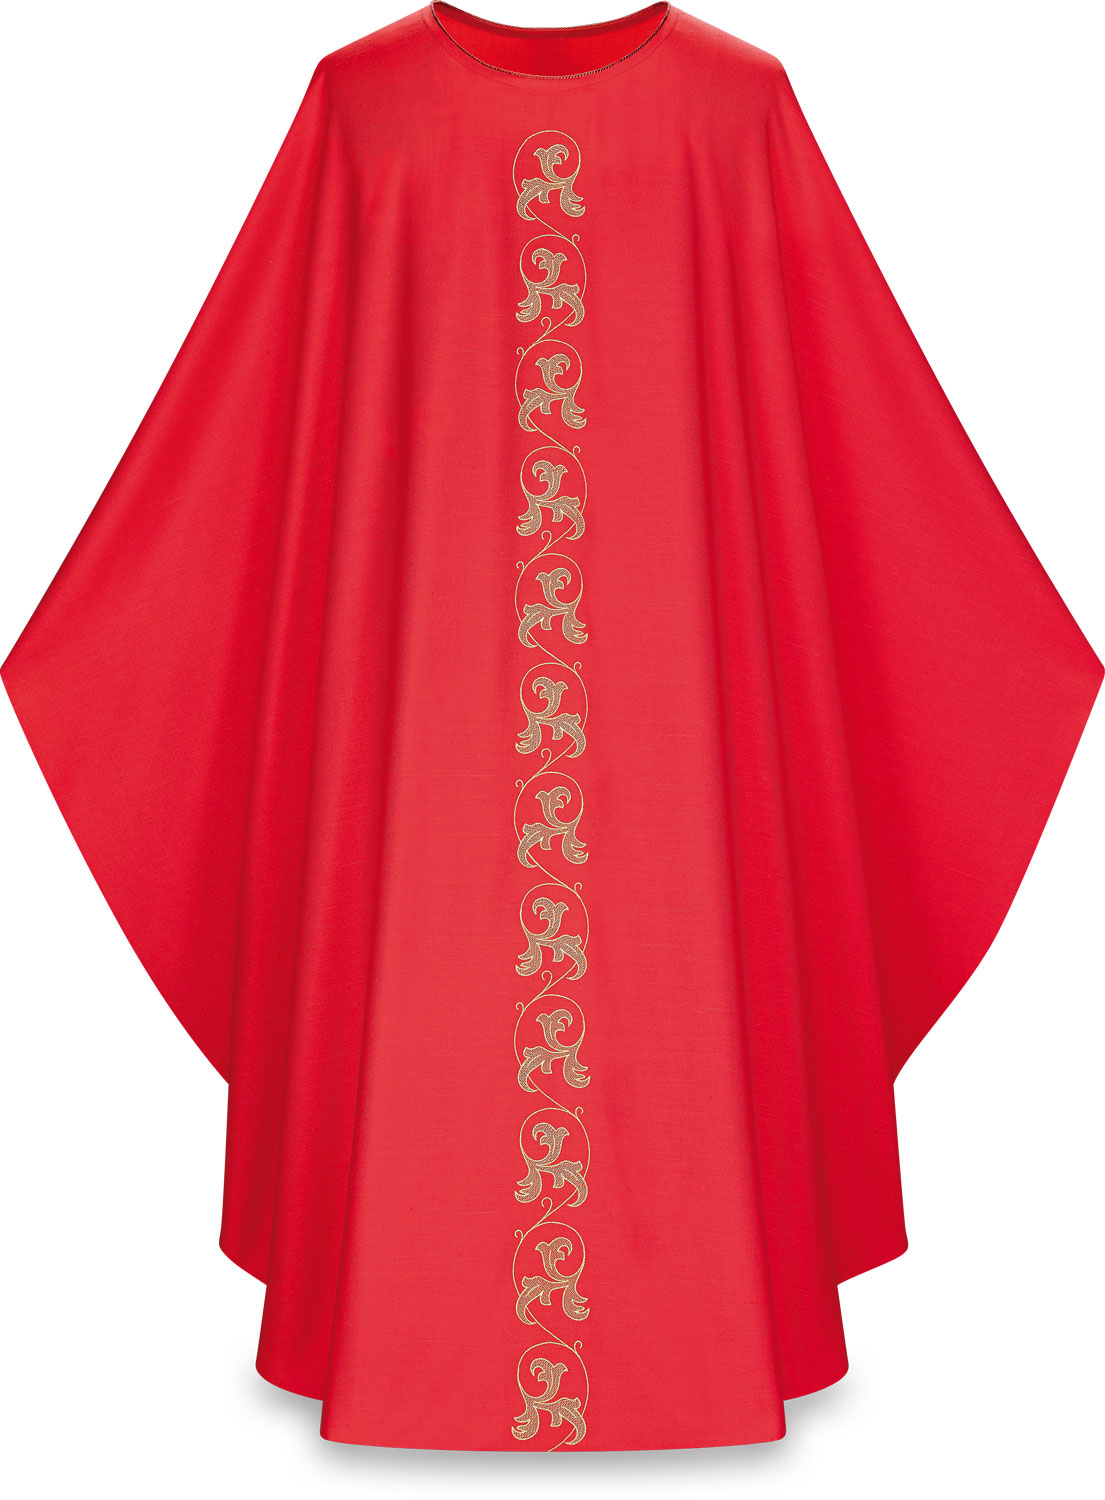 Chasuble | Red | 5224 | Slabbinck